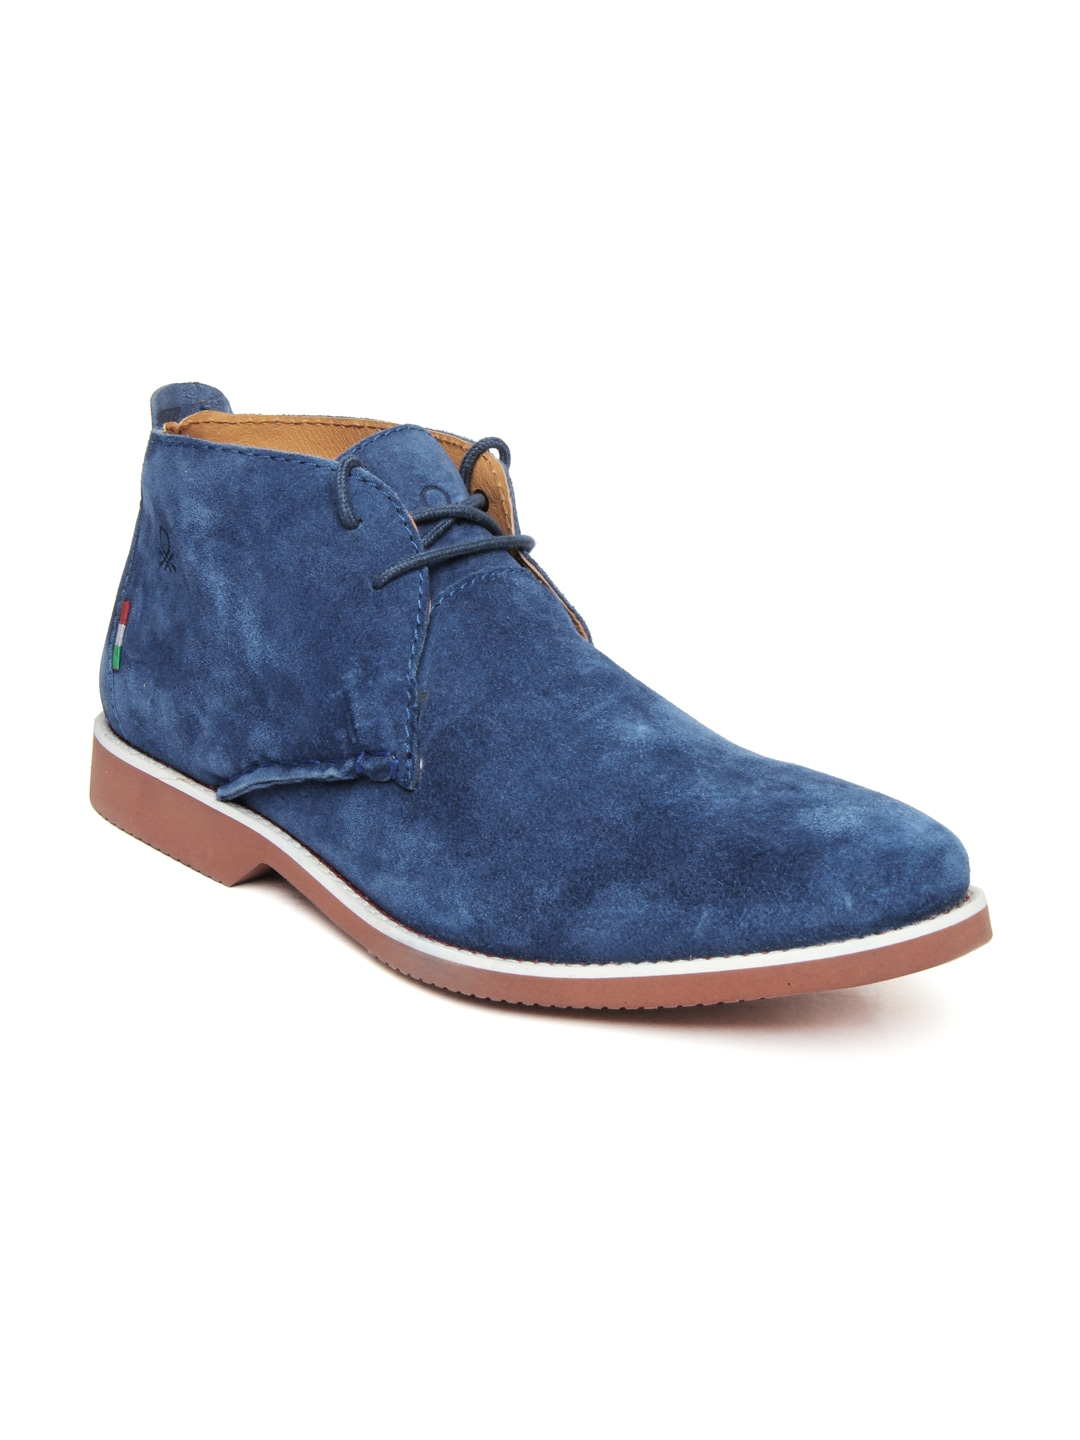 buy united colors of benetton blue suede casual shoes